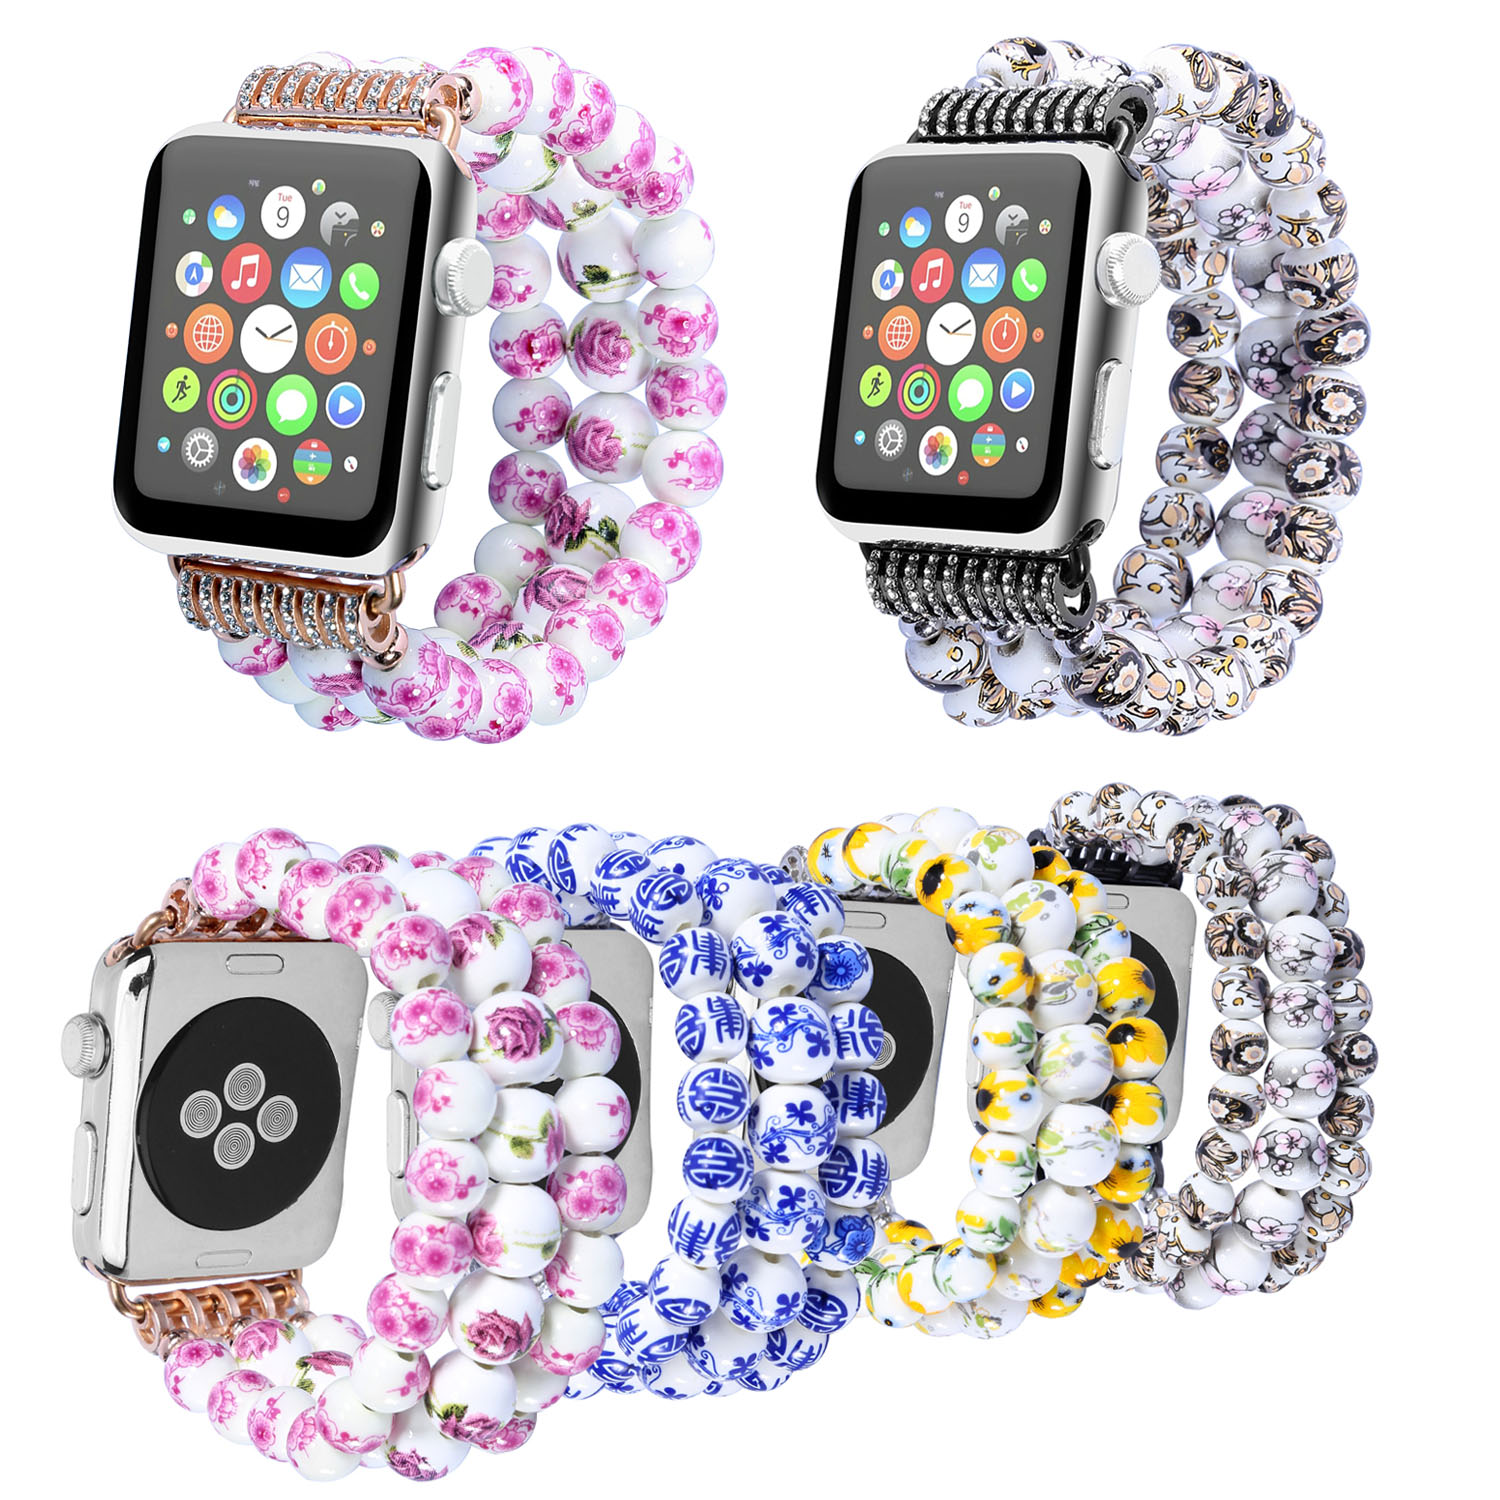 Women's Flower Ceramic Beads Stretch Bracelet for Apple Watch Band Wristband Strap for iWatch 42mm 38mm 44mm 40mm Series 4 3 2 1 | Watchbands